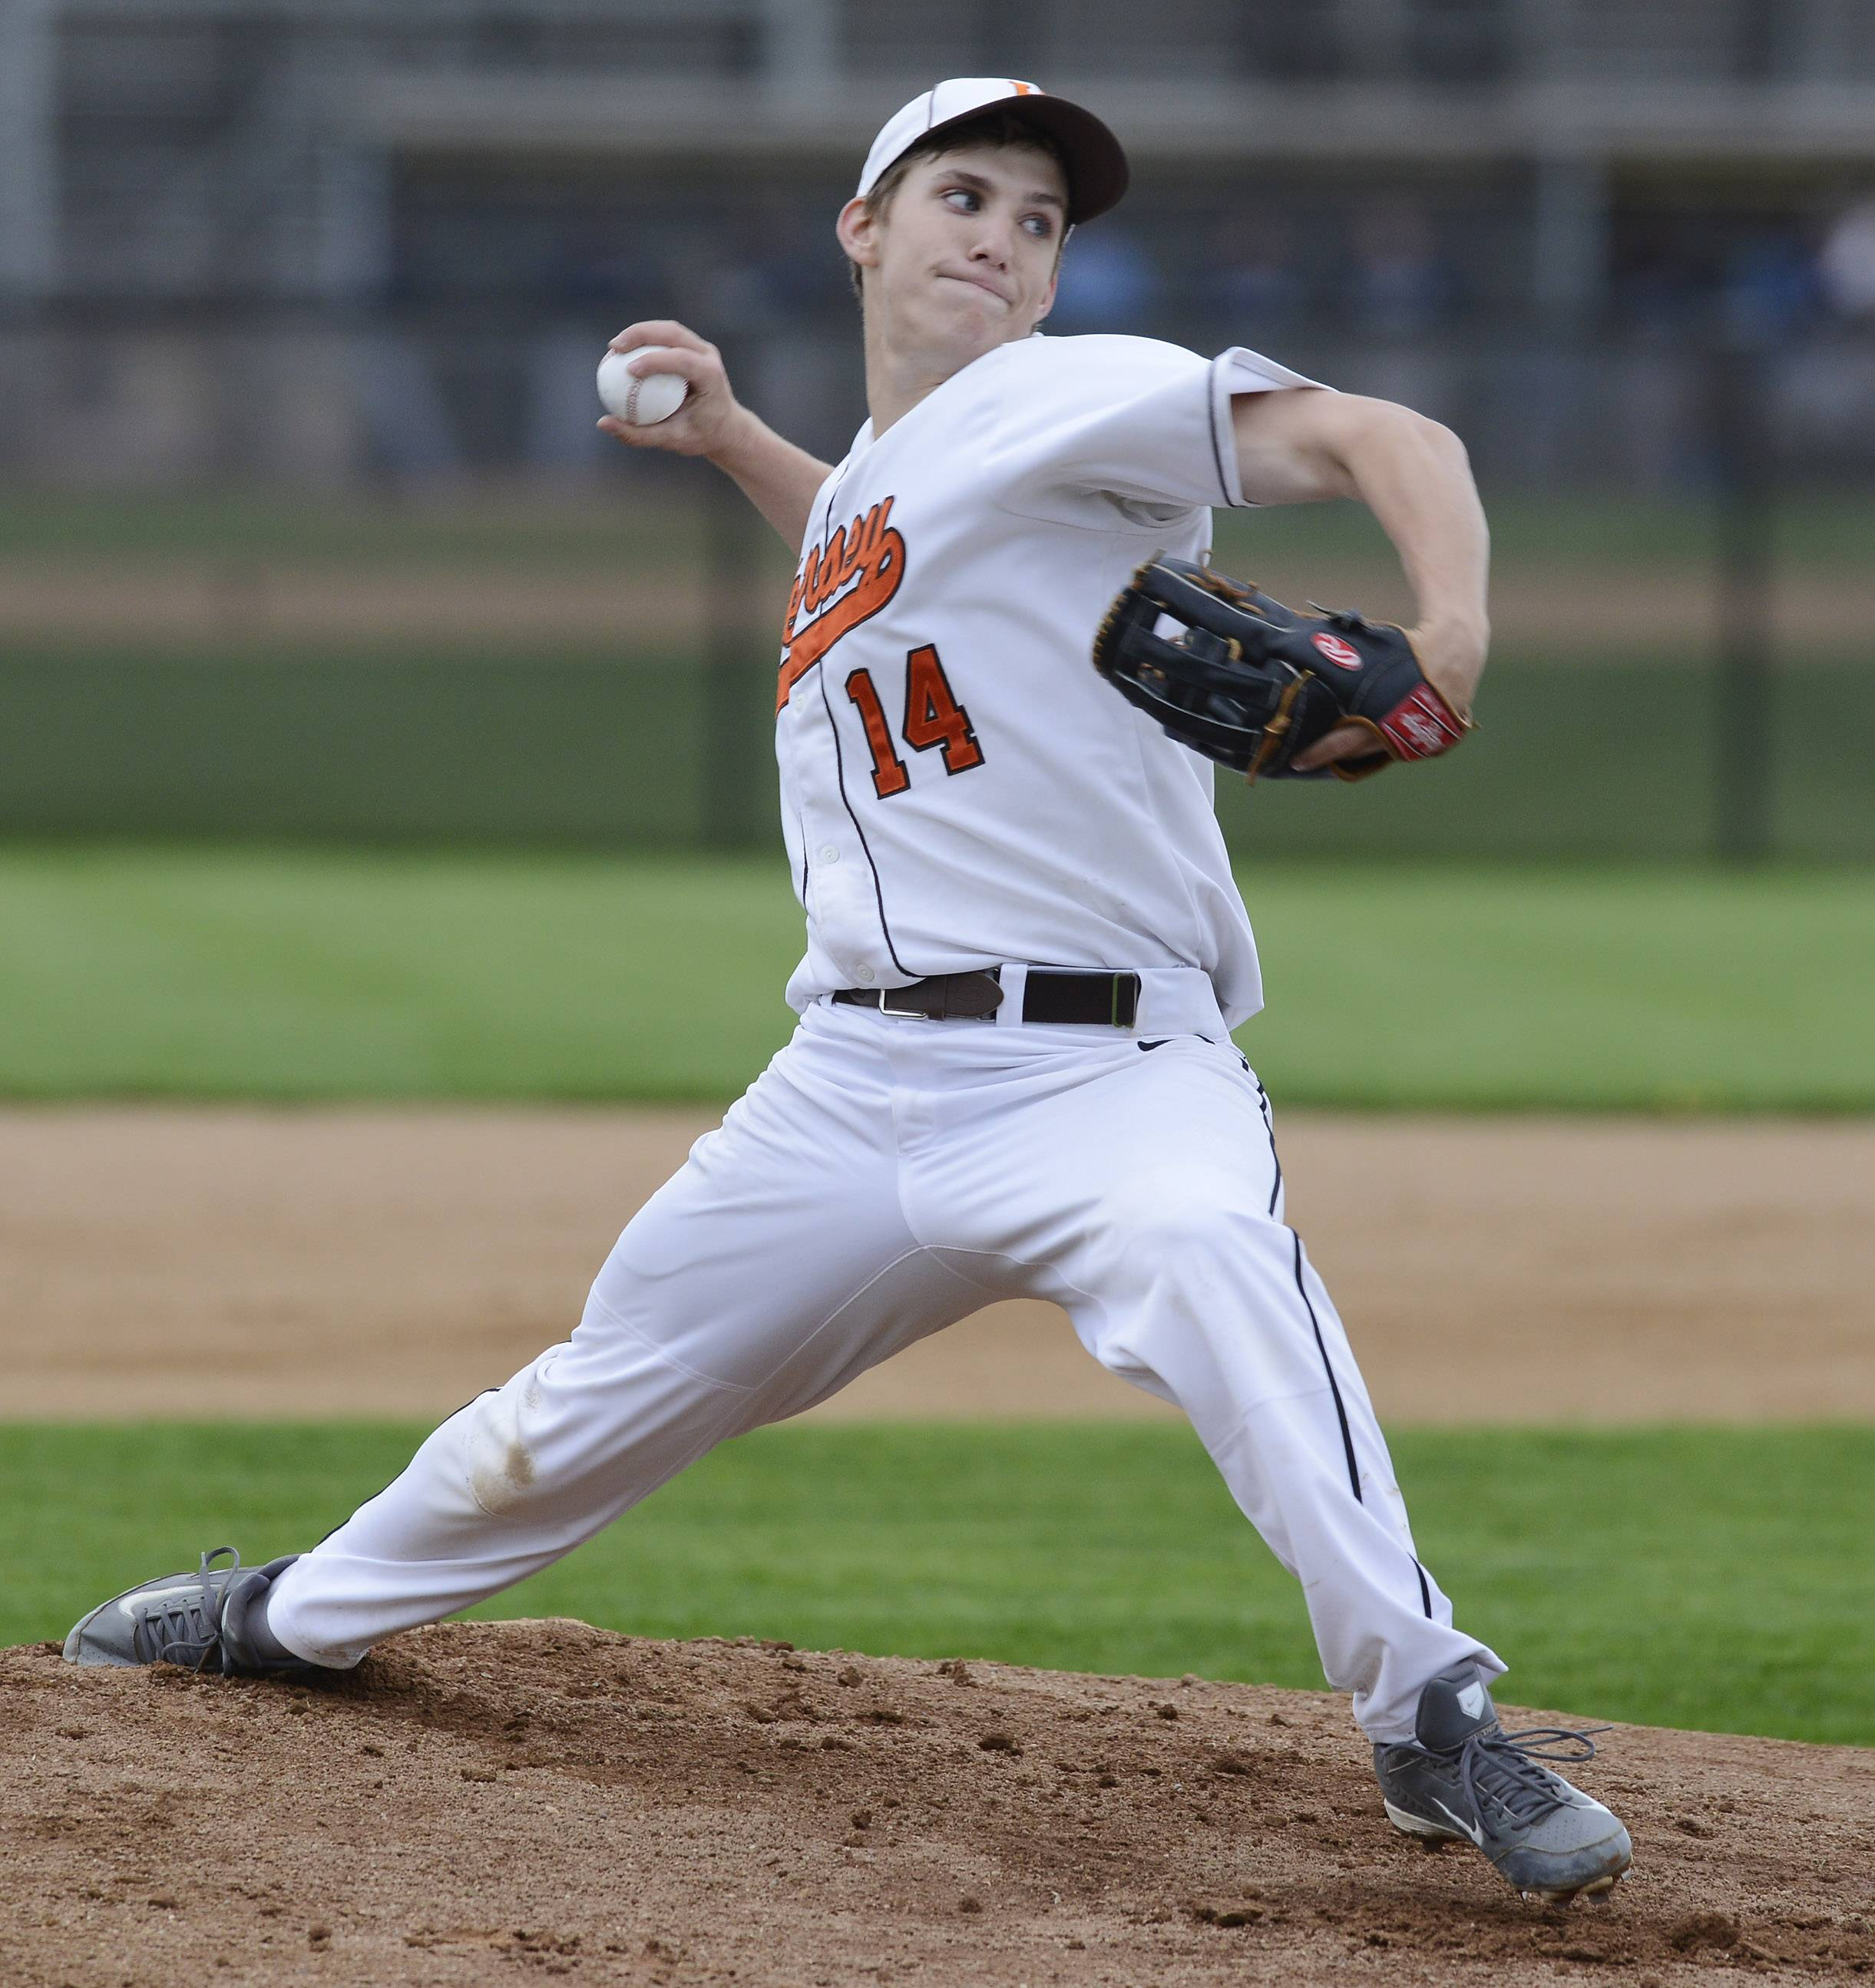 Hersey's Ryan Allain delivers a pitch against Prospect during Wednesday's game in Arlington Heights.